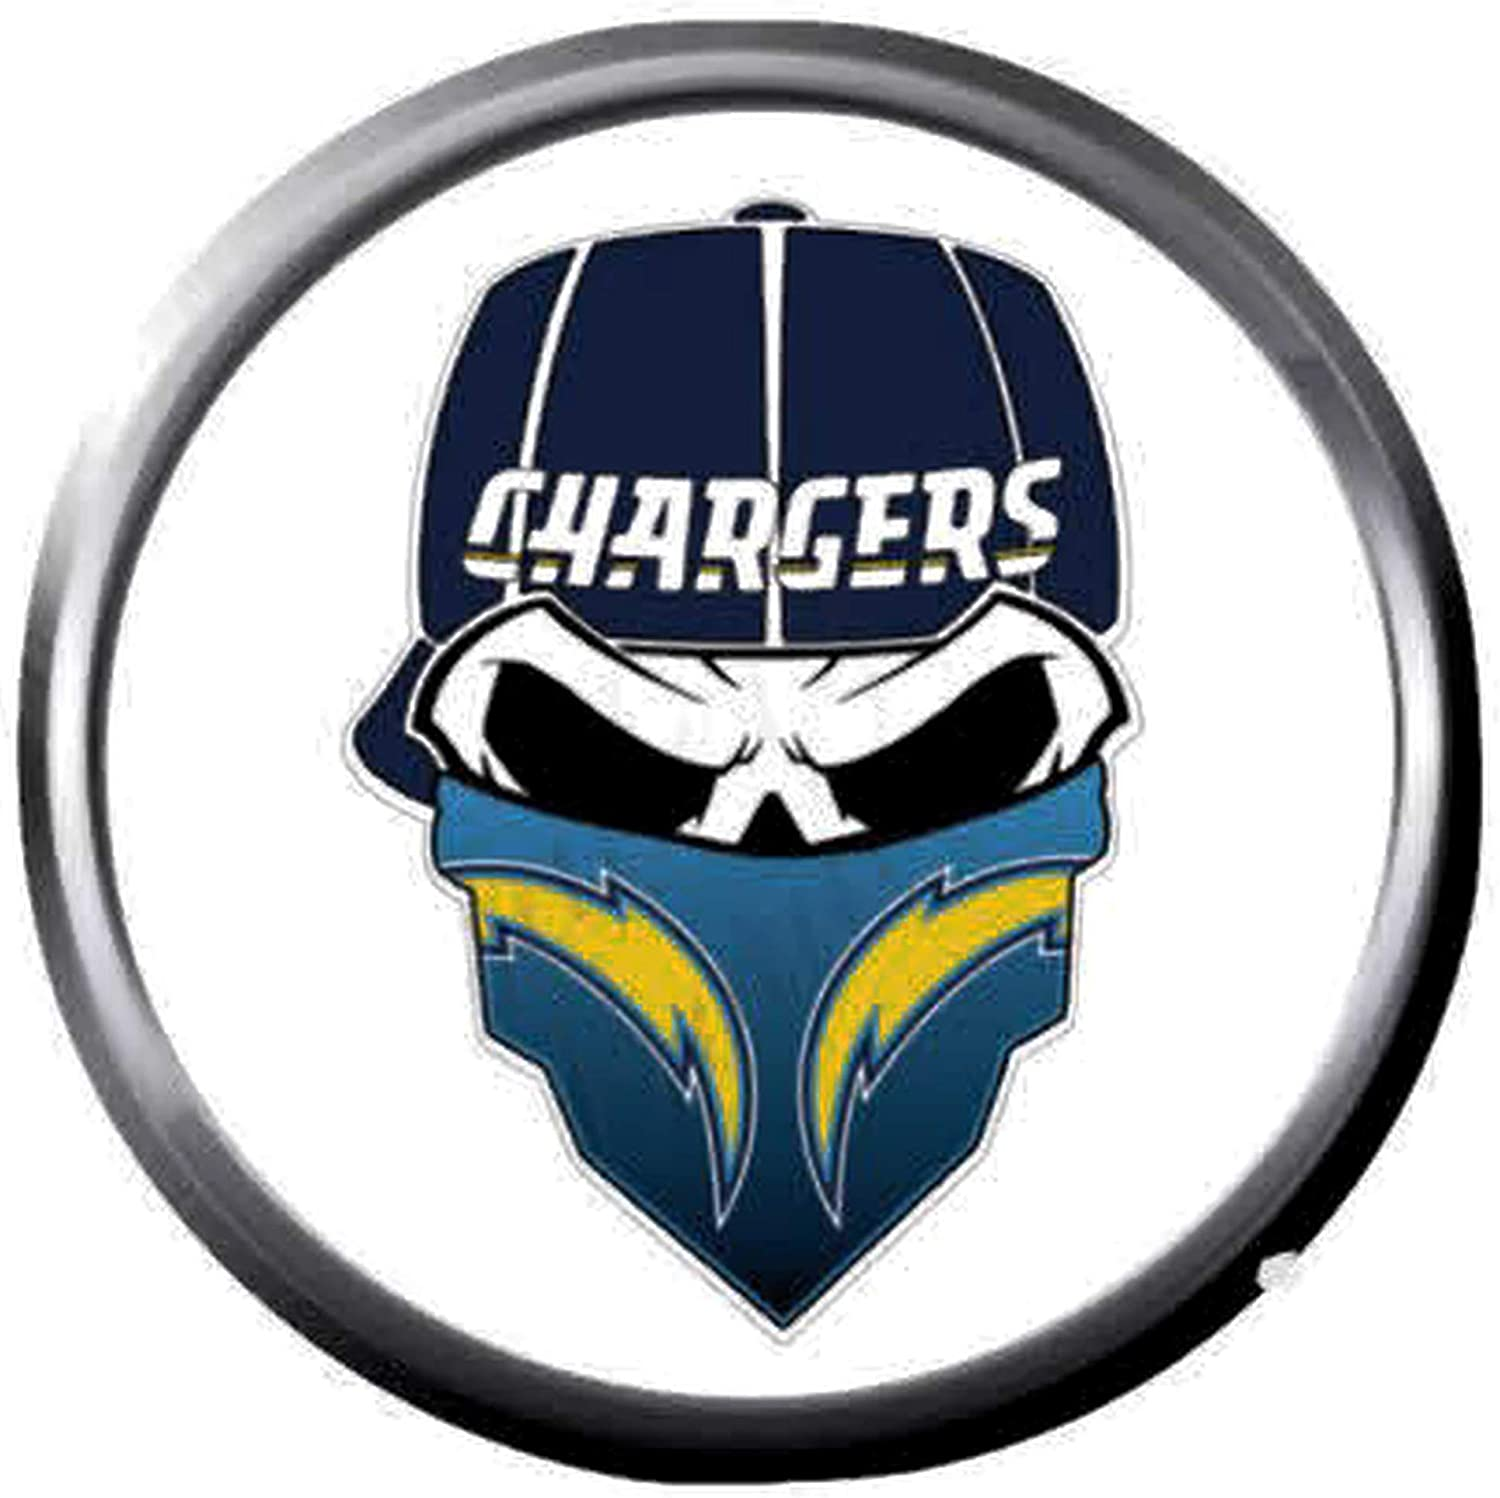 Amazon Com Mean Face Bolt La Chargers Nfl Football Logo 18mm 20mm Snap Jewelry Charm Jewelry